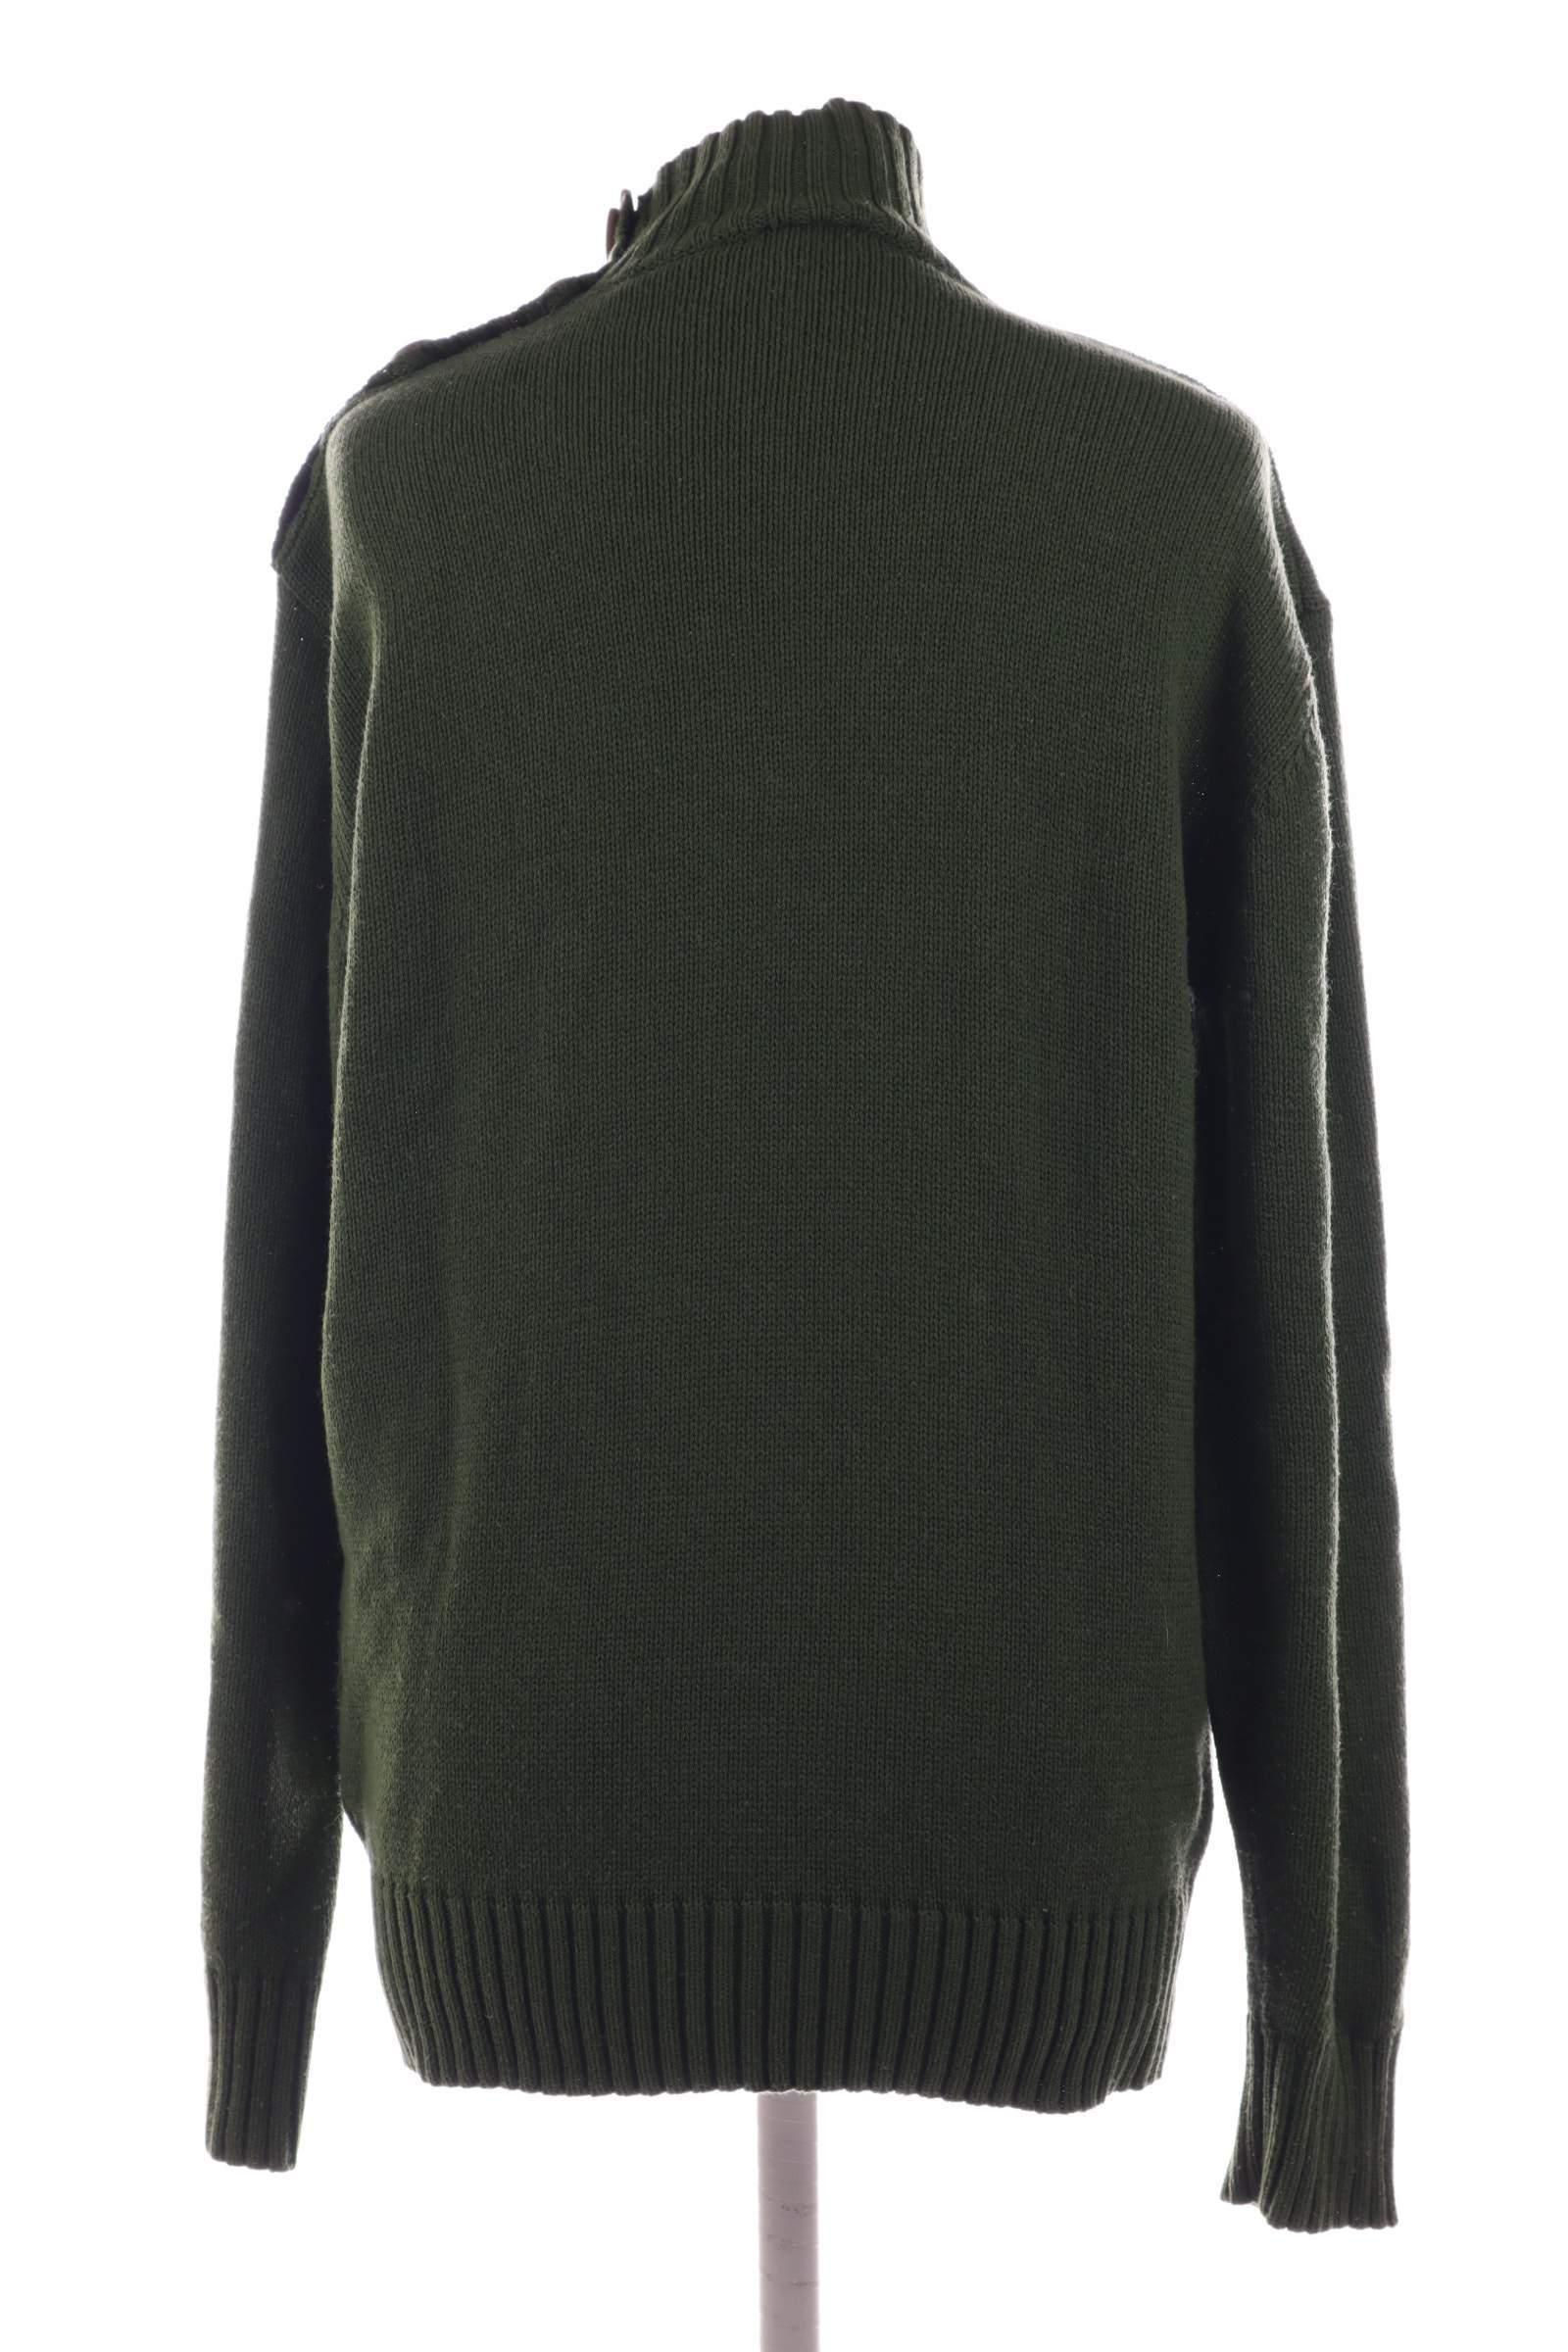 Smog Green Sweater - upty.store